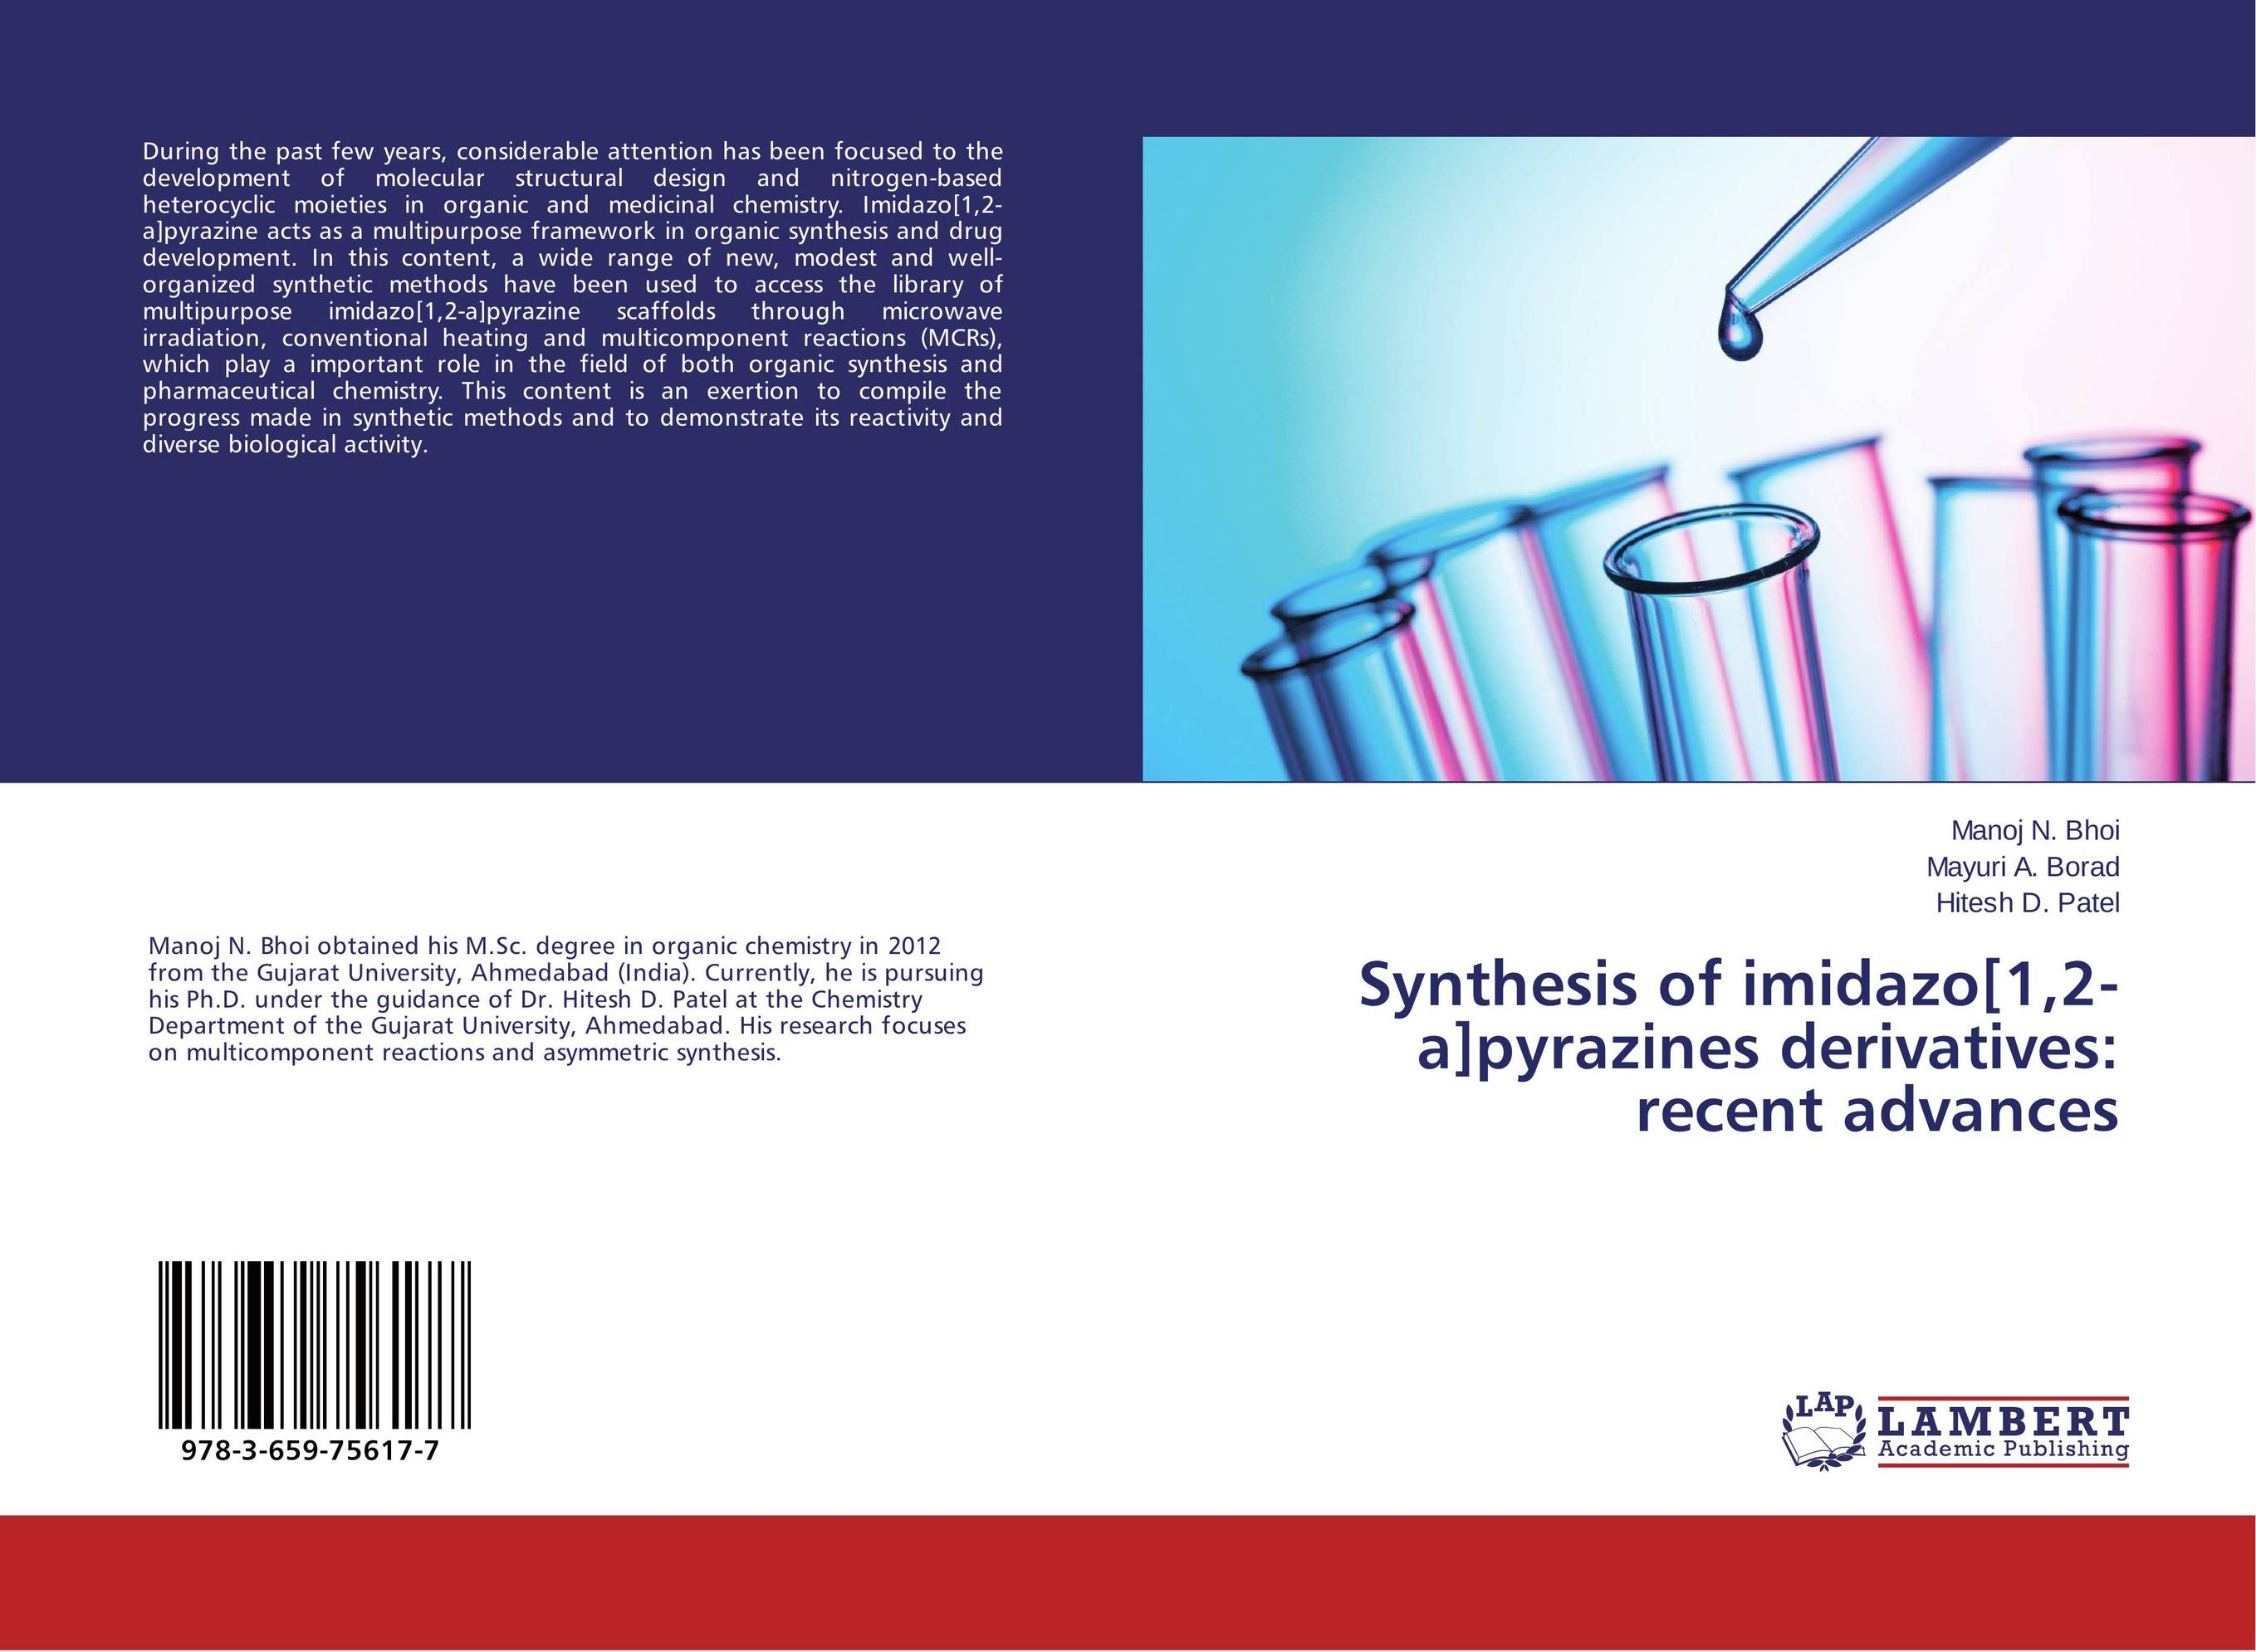 Synthesis of imidazo[1,2-a]pyrazines derivatives: recent advances theilheimer synthetic methods of organic chemistry yearbook 1974